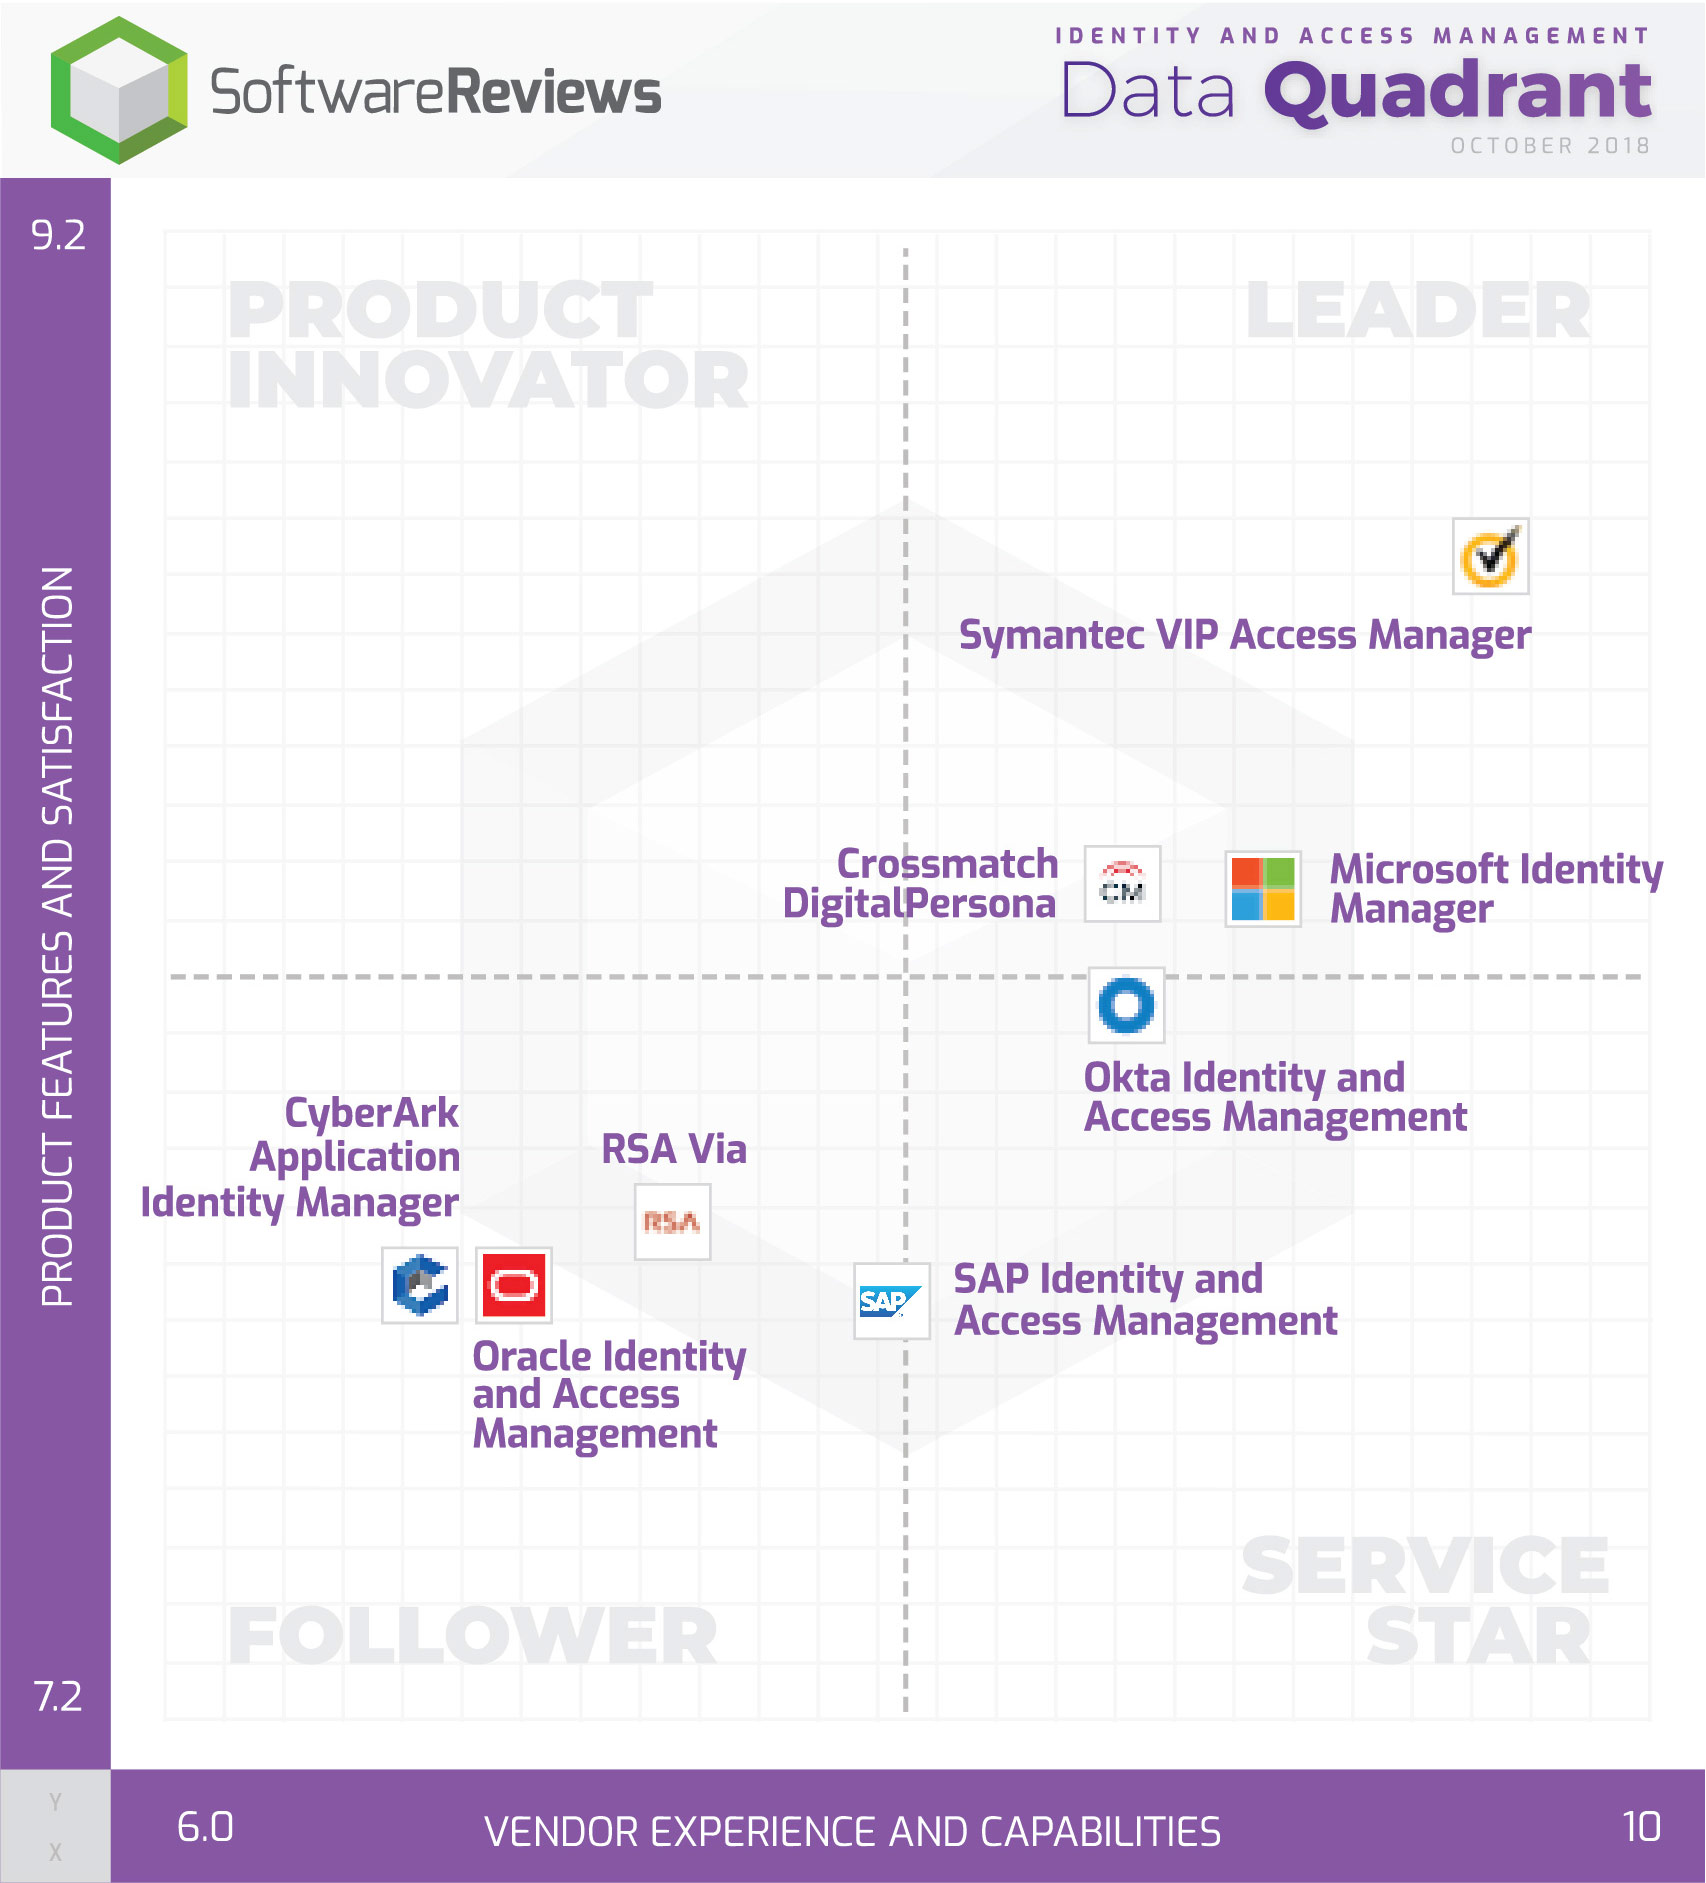 Identity and Access Management Data Quadrant